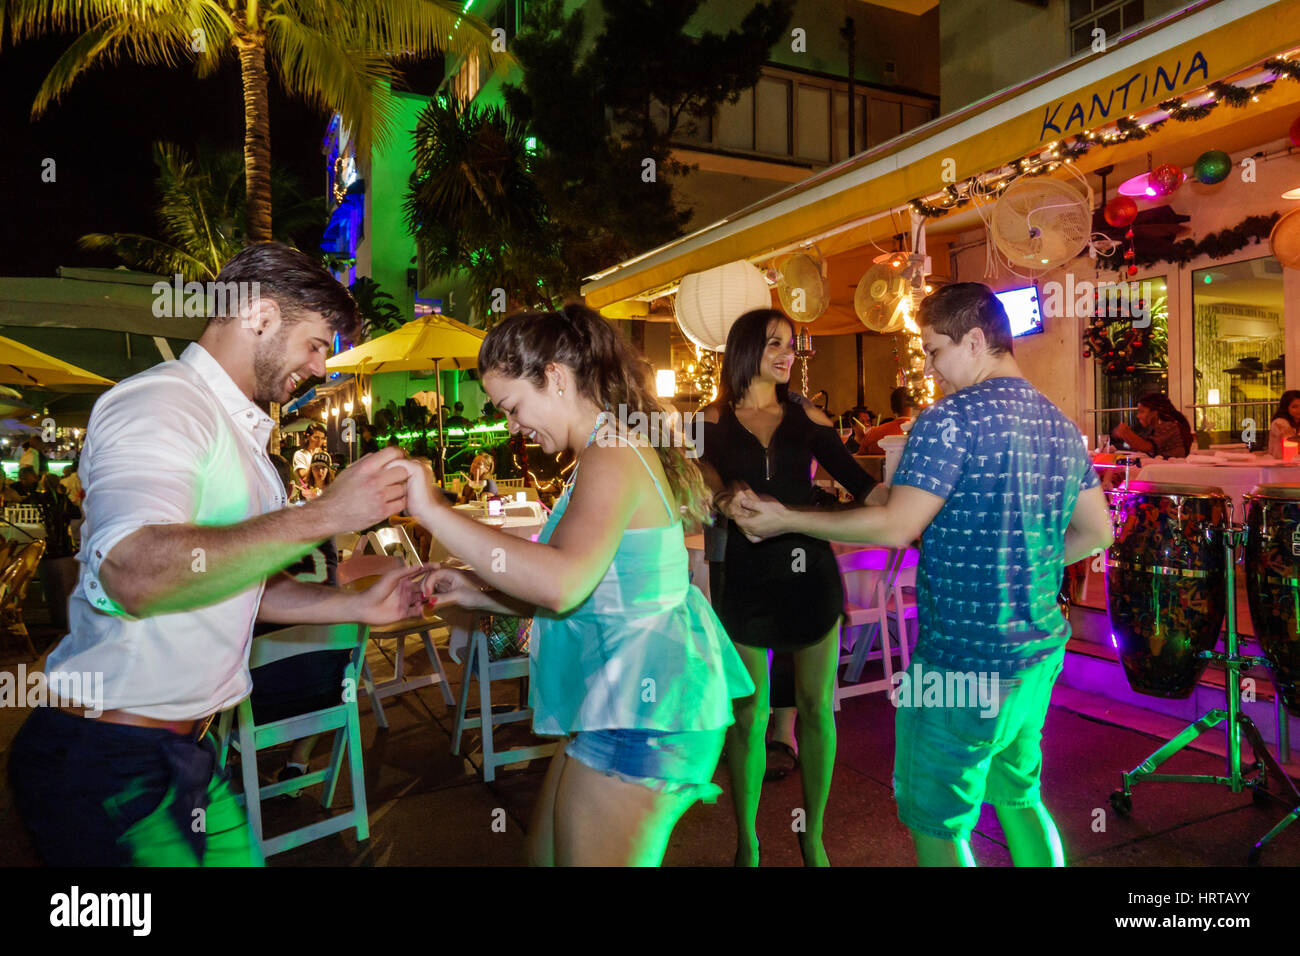 Miami Beach Florida Ocean Drive Kantina Restaurant Salsa Dancing Hispanic Man Woman Couple Night Nightlife